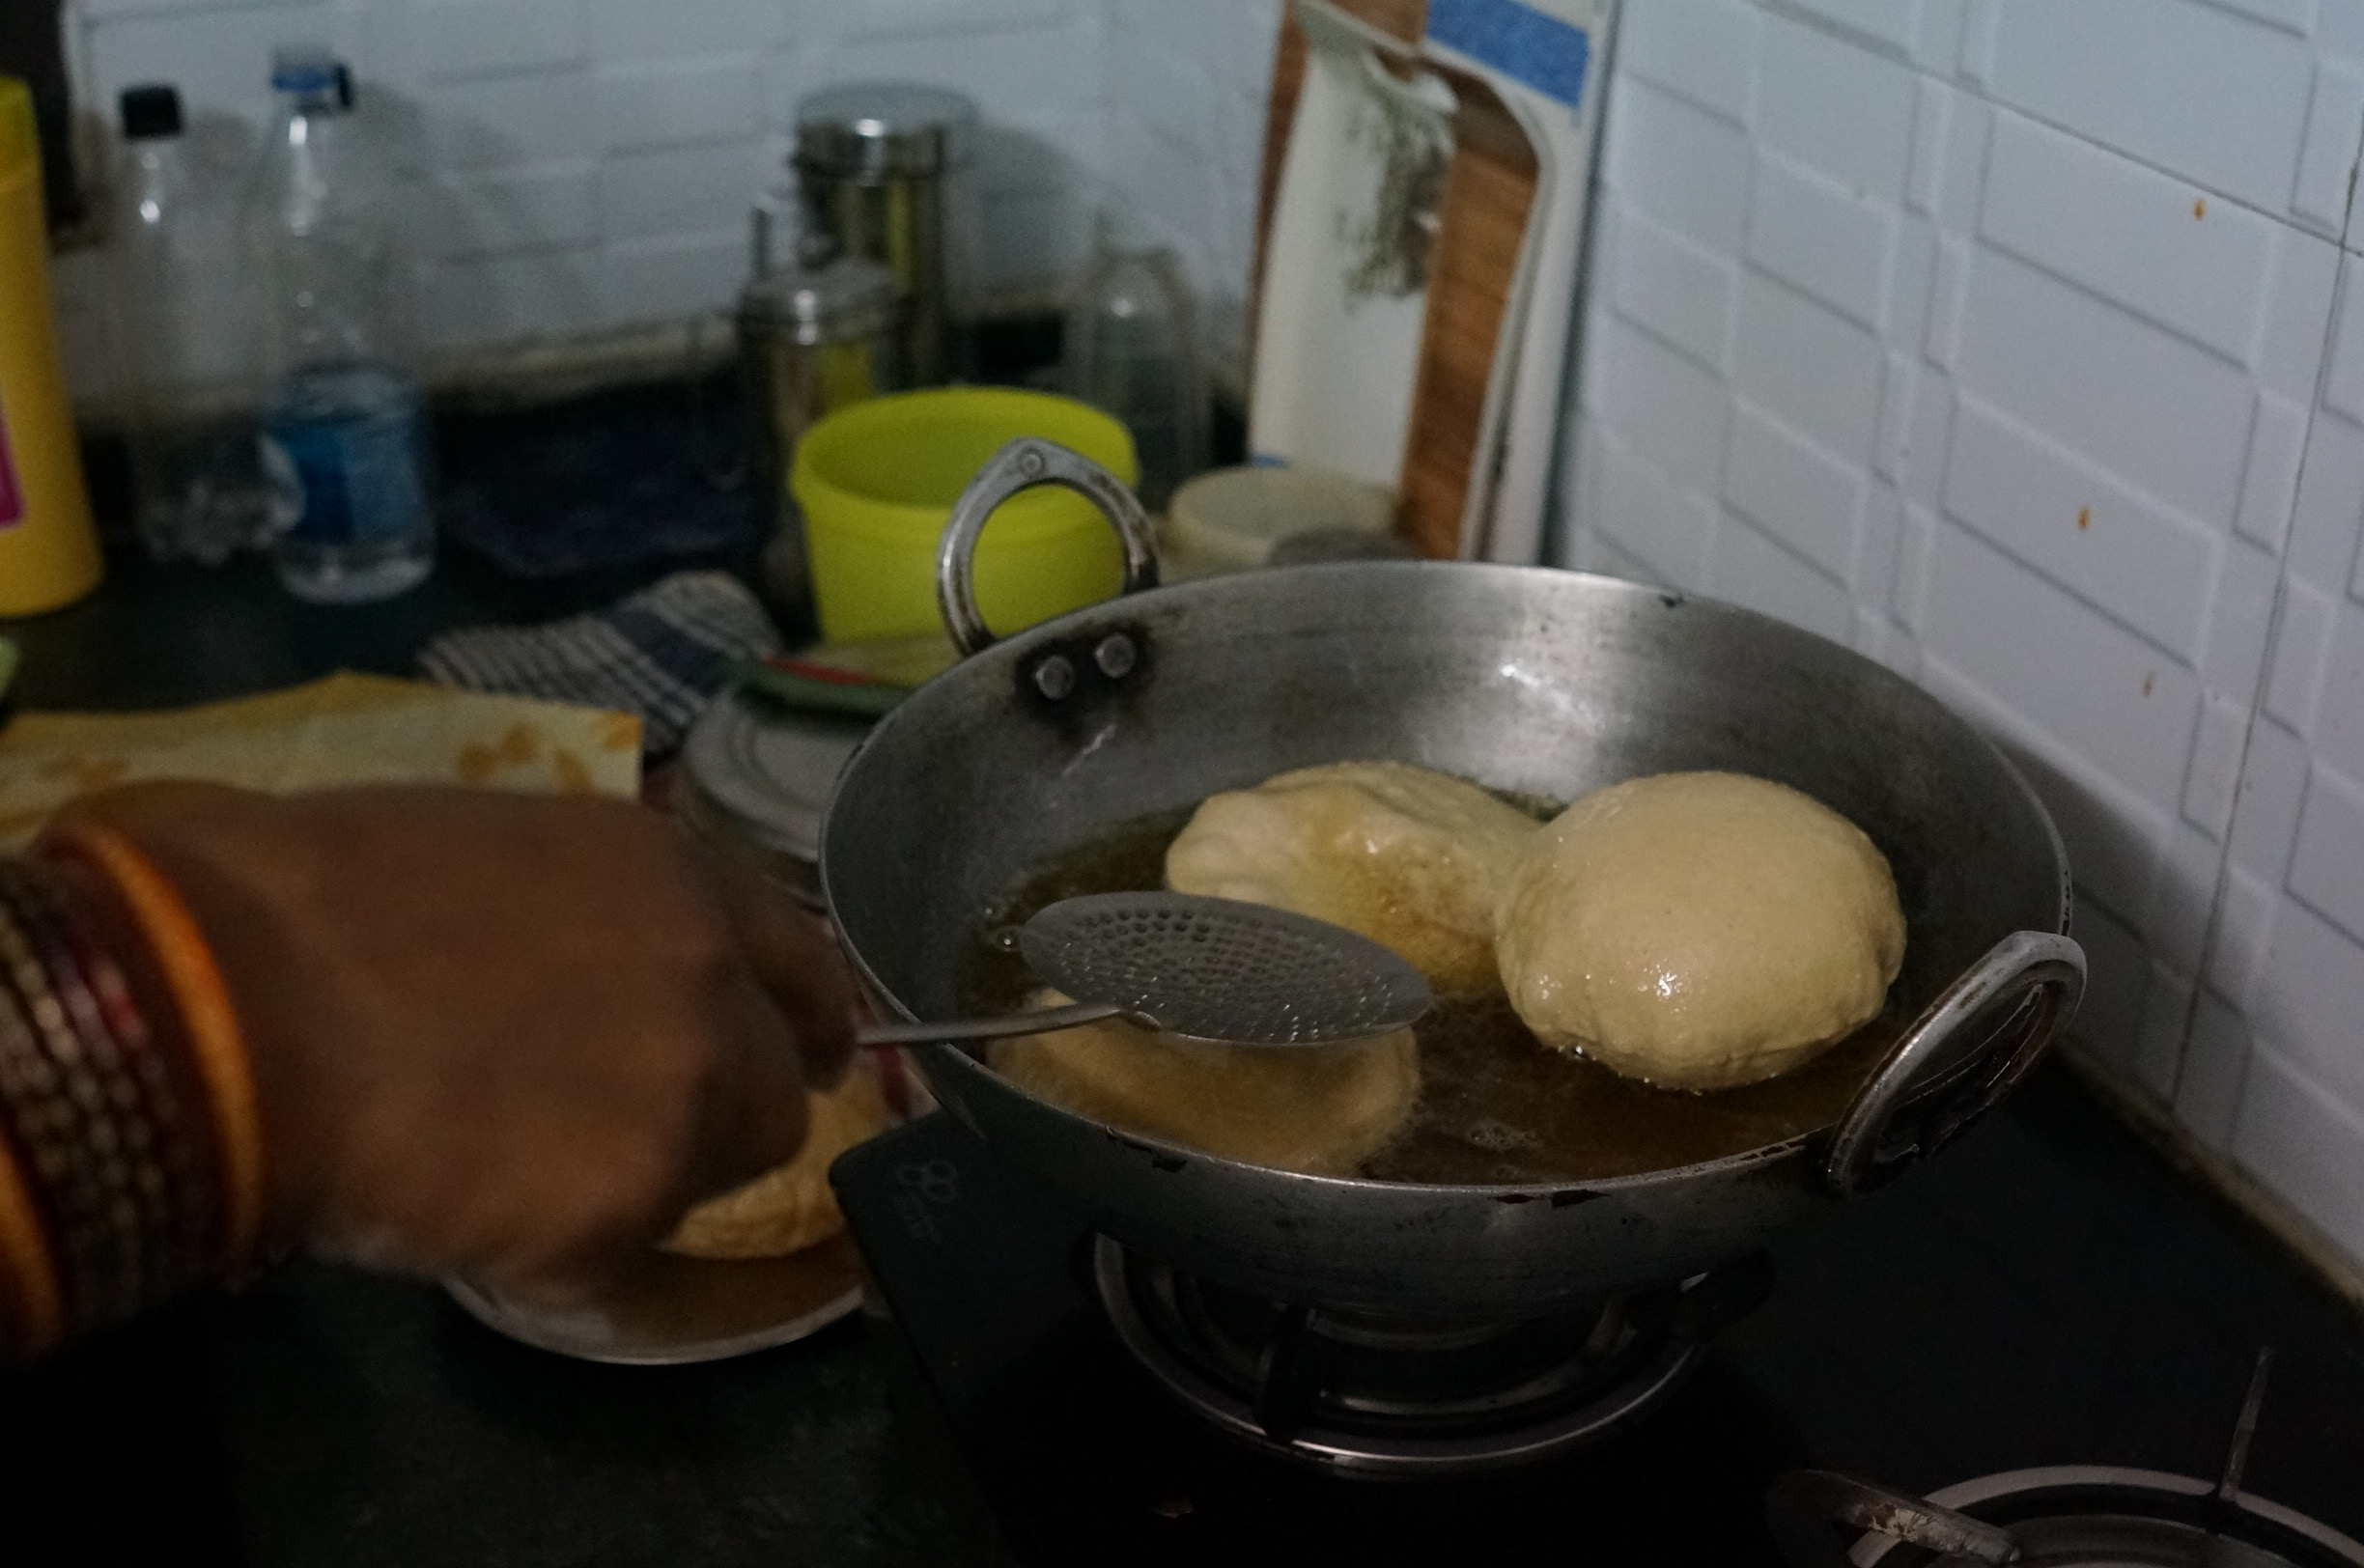 Puri / Poori - deep fried Indian bread usually served with a savory curry.